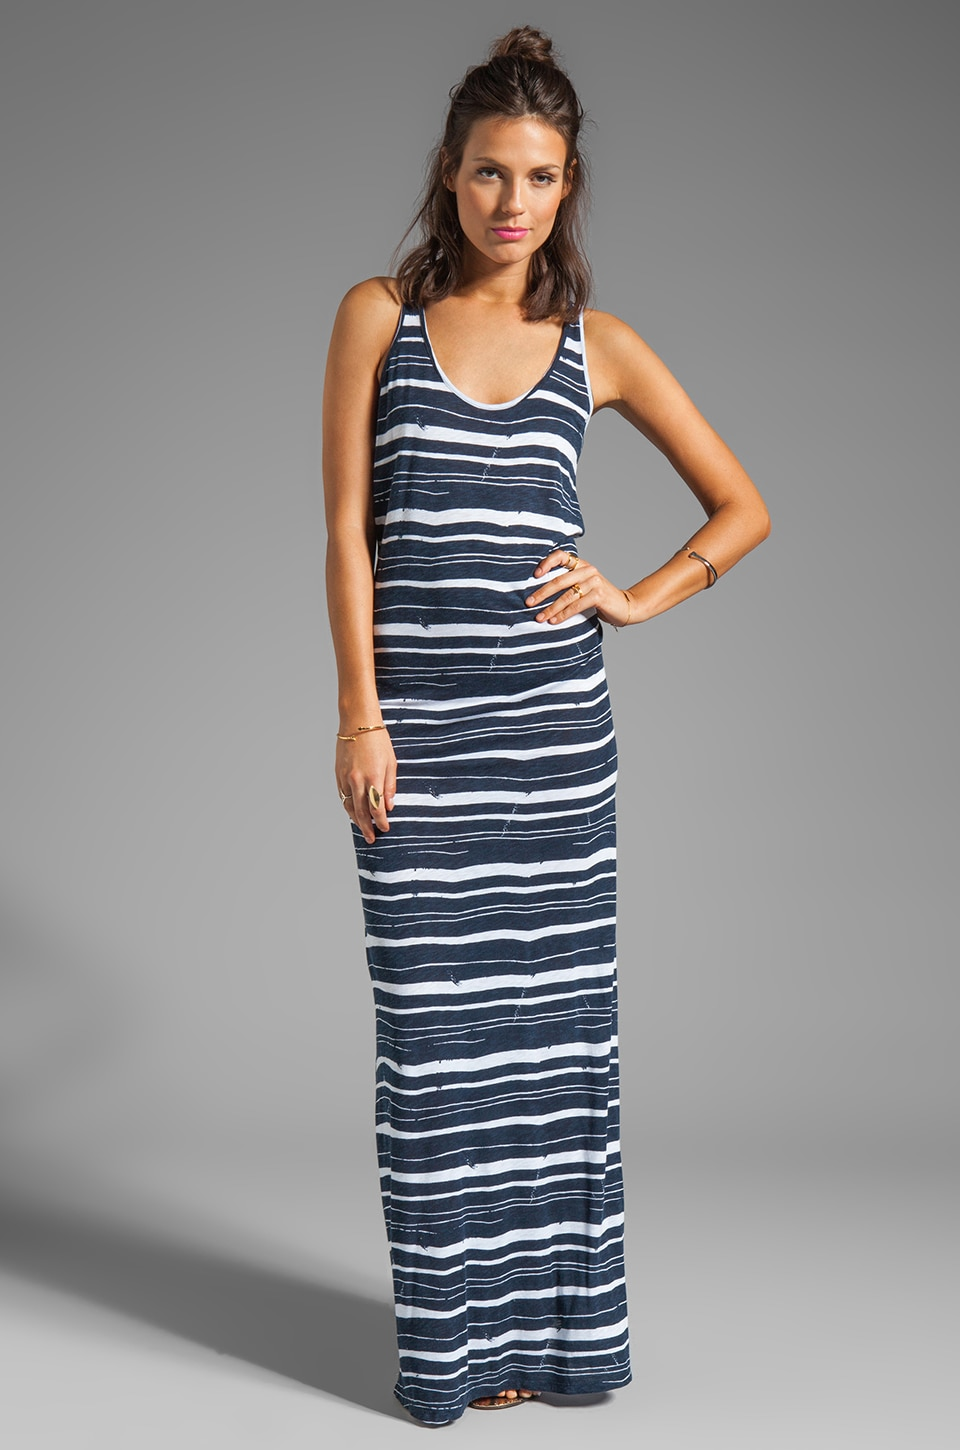 Velvet by Graham & Spencer Beth Painted Stripe Dress in Denim